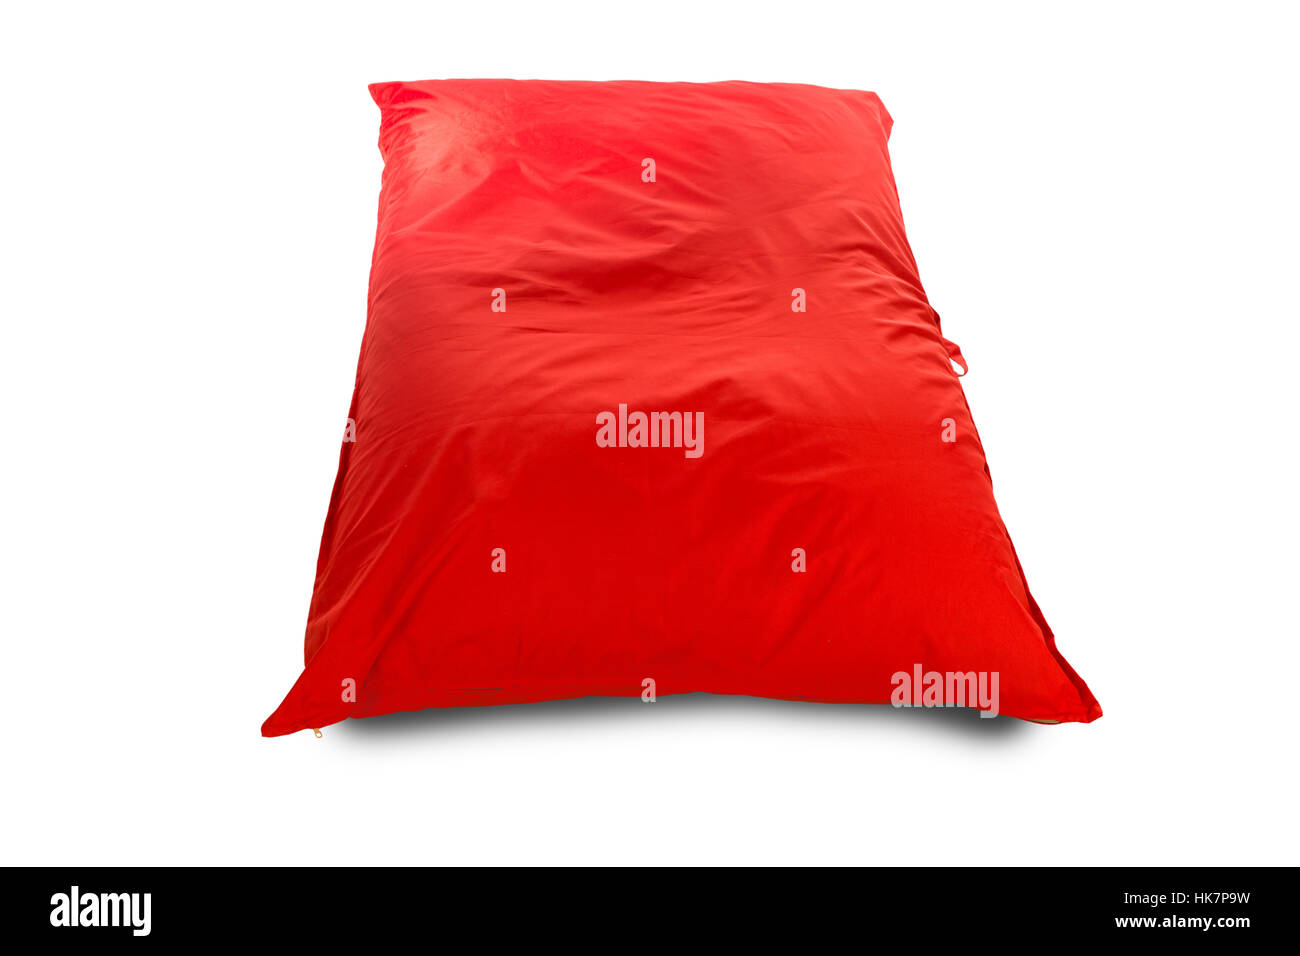 Big red square shaped beanbag sofa chair for living room or other